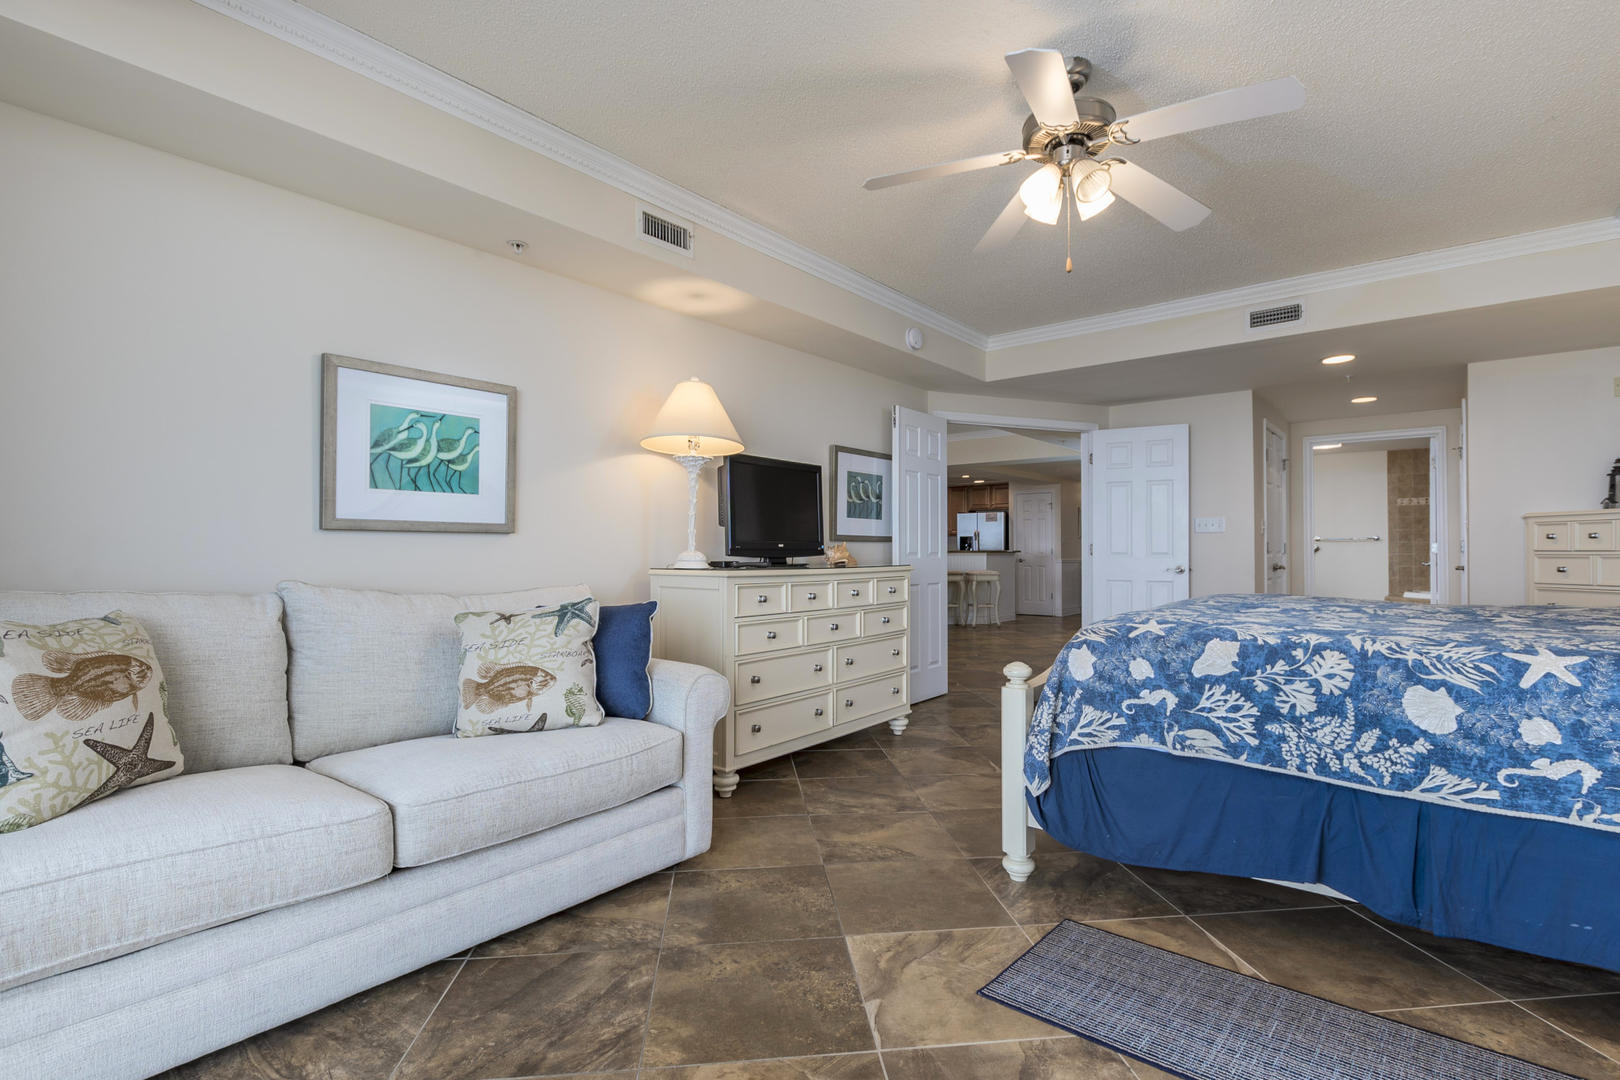 Oceans Mist 301 - Master Bedroom